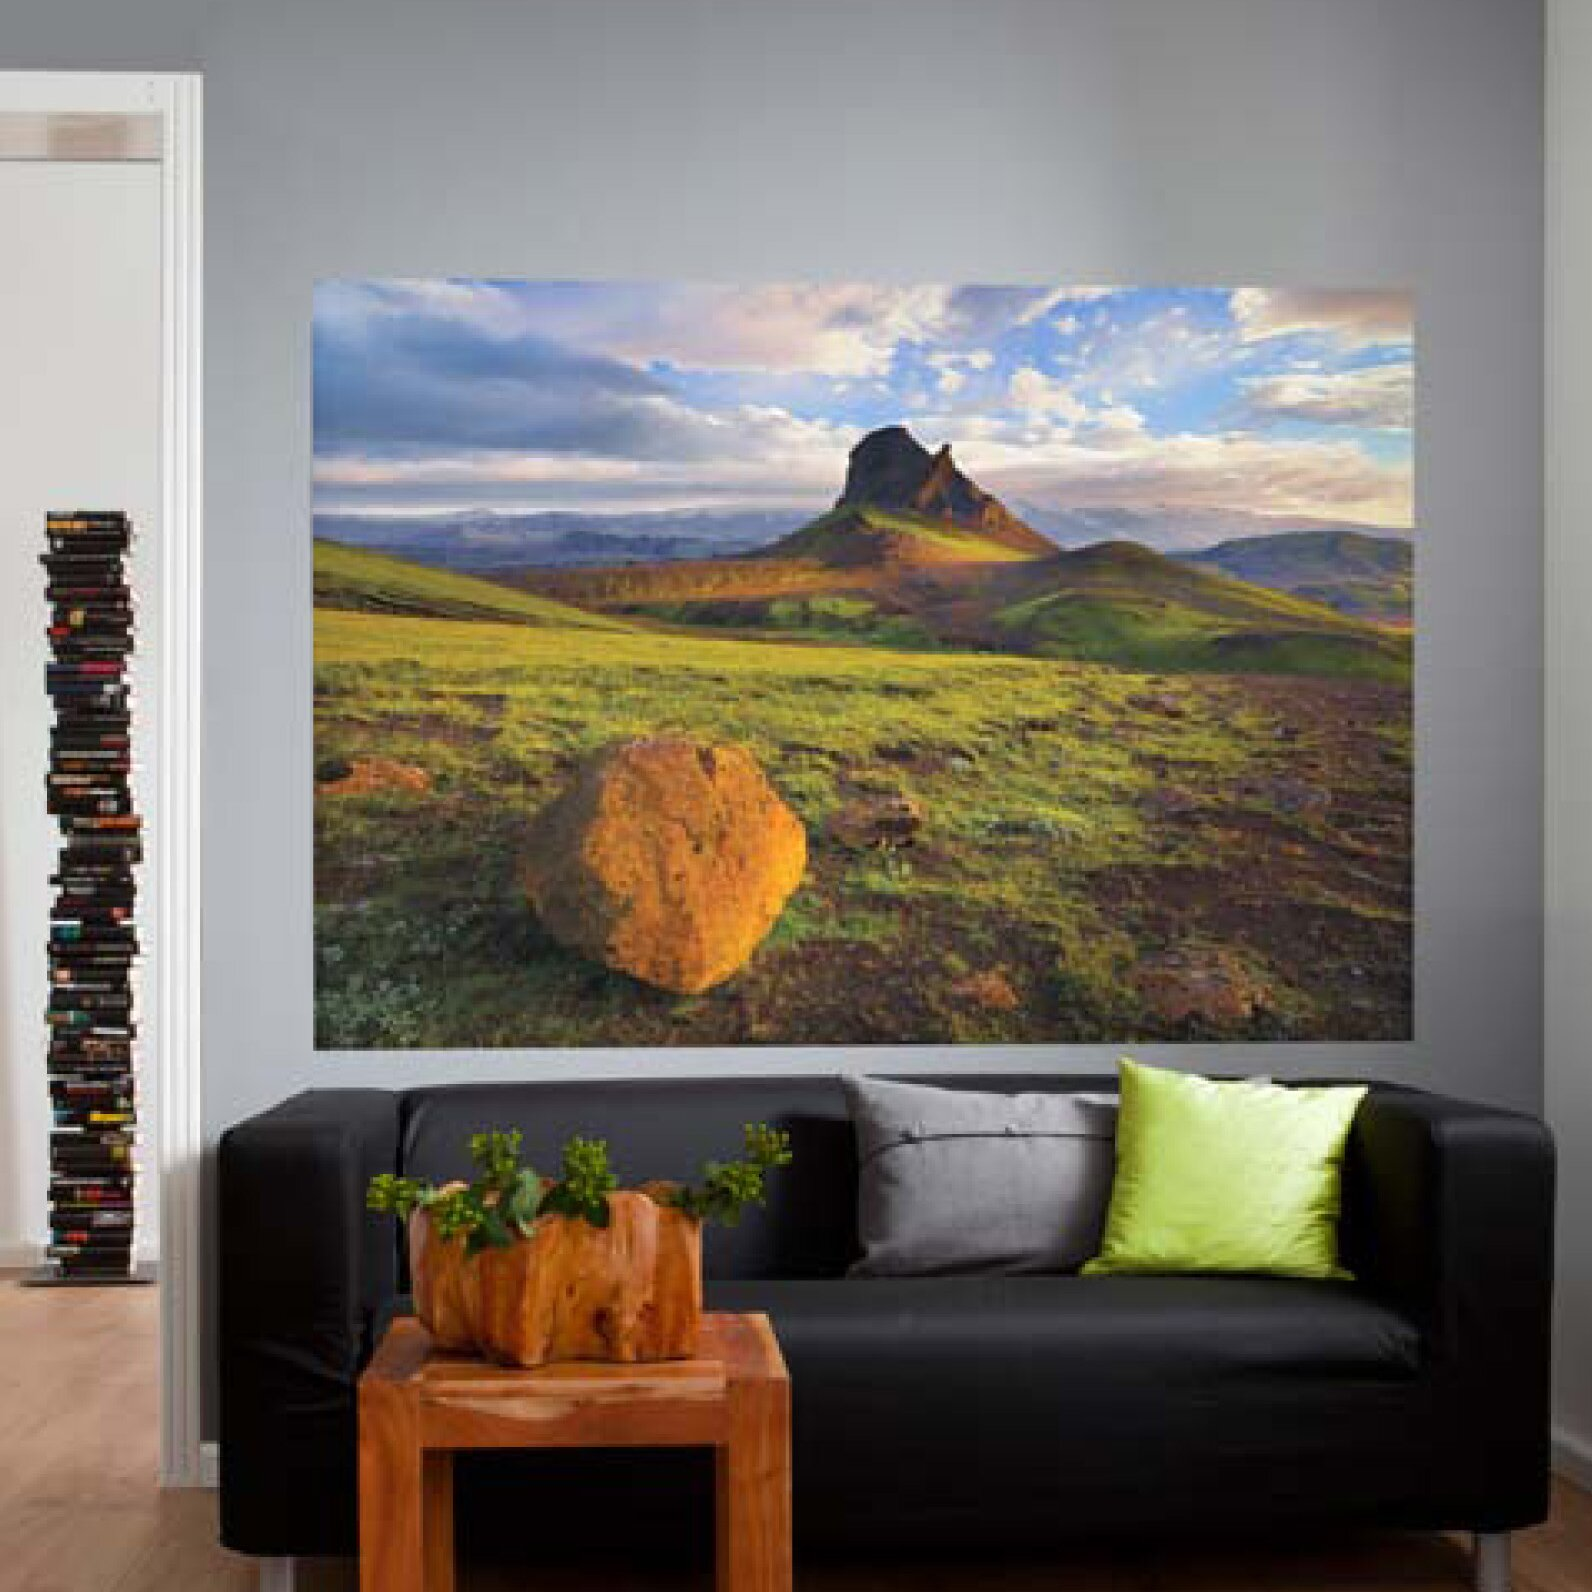 Brewster home fashions komar iceland wall mural reviews for Brewster home fashions komar wall mural